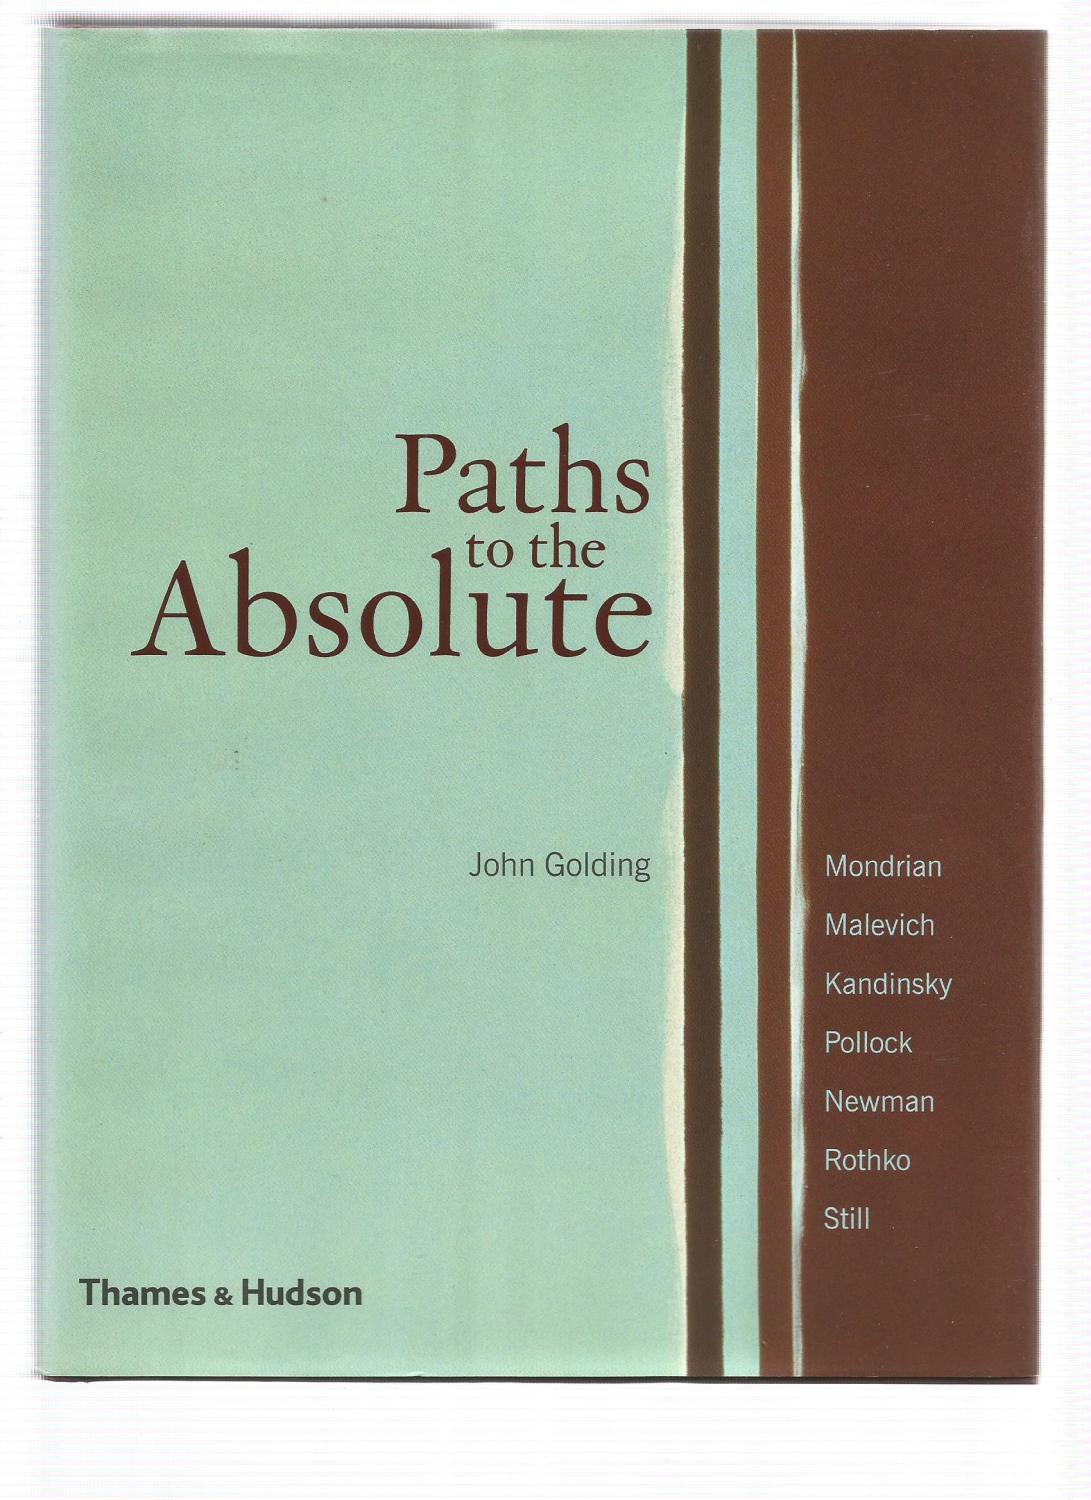 PATHS TO THE ABSOLUTE - GOLDING, John